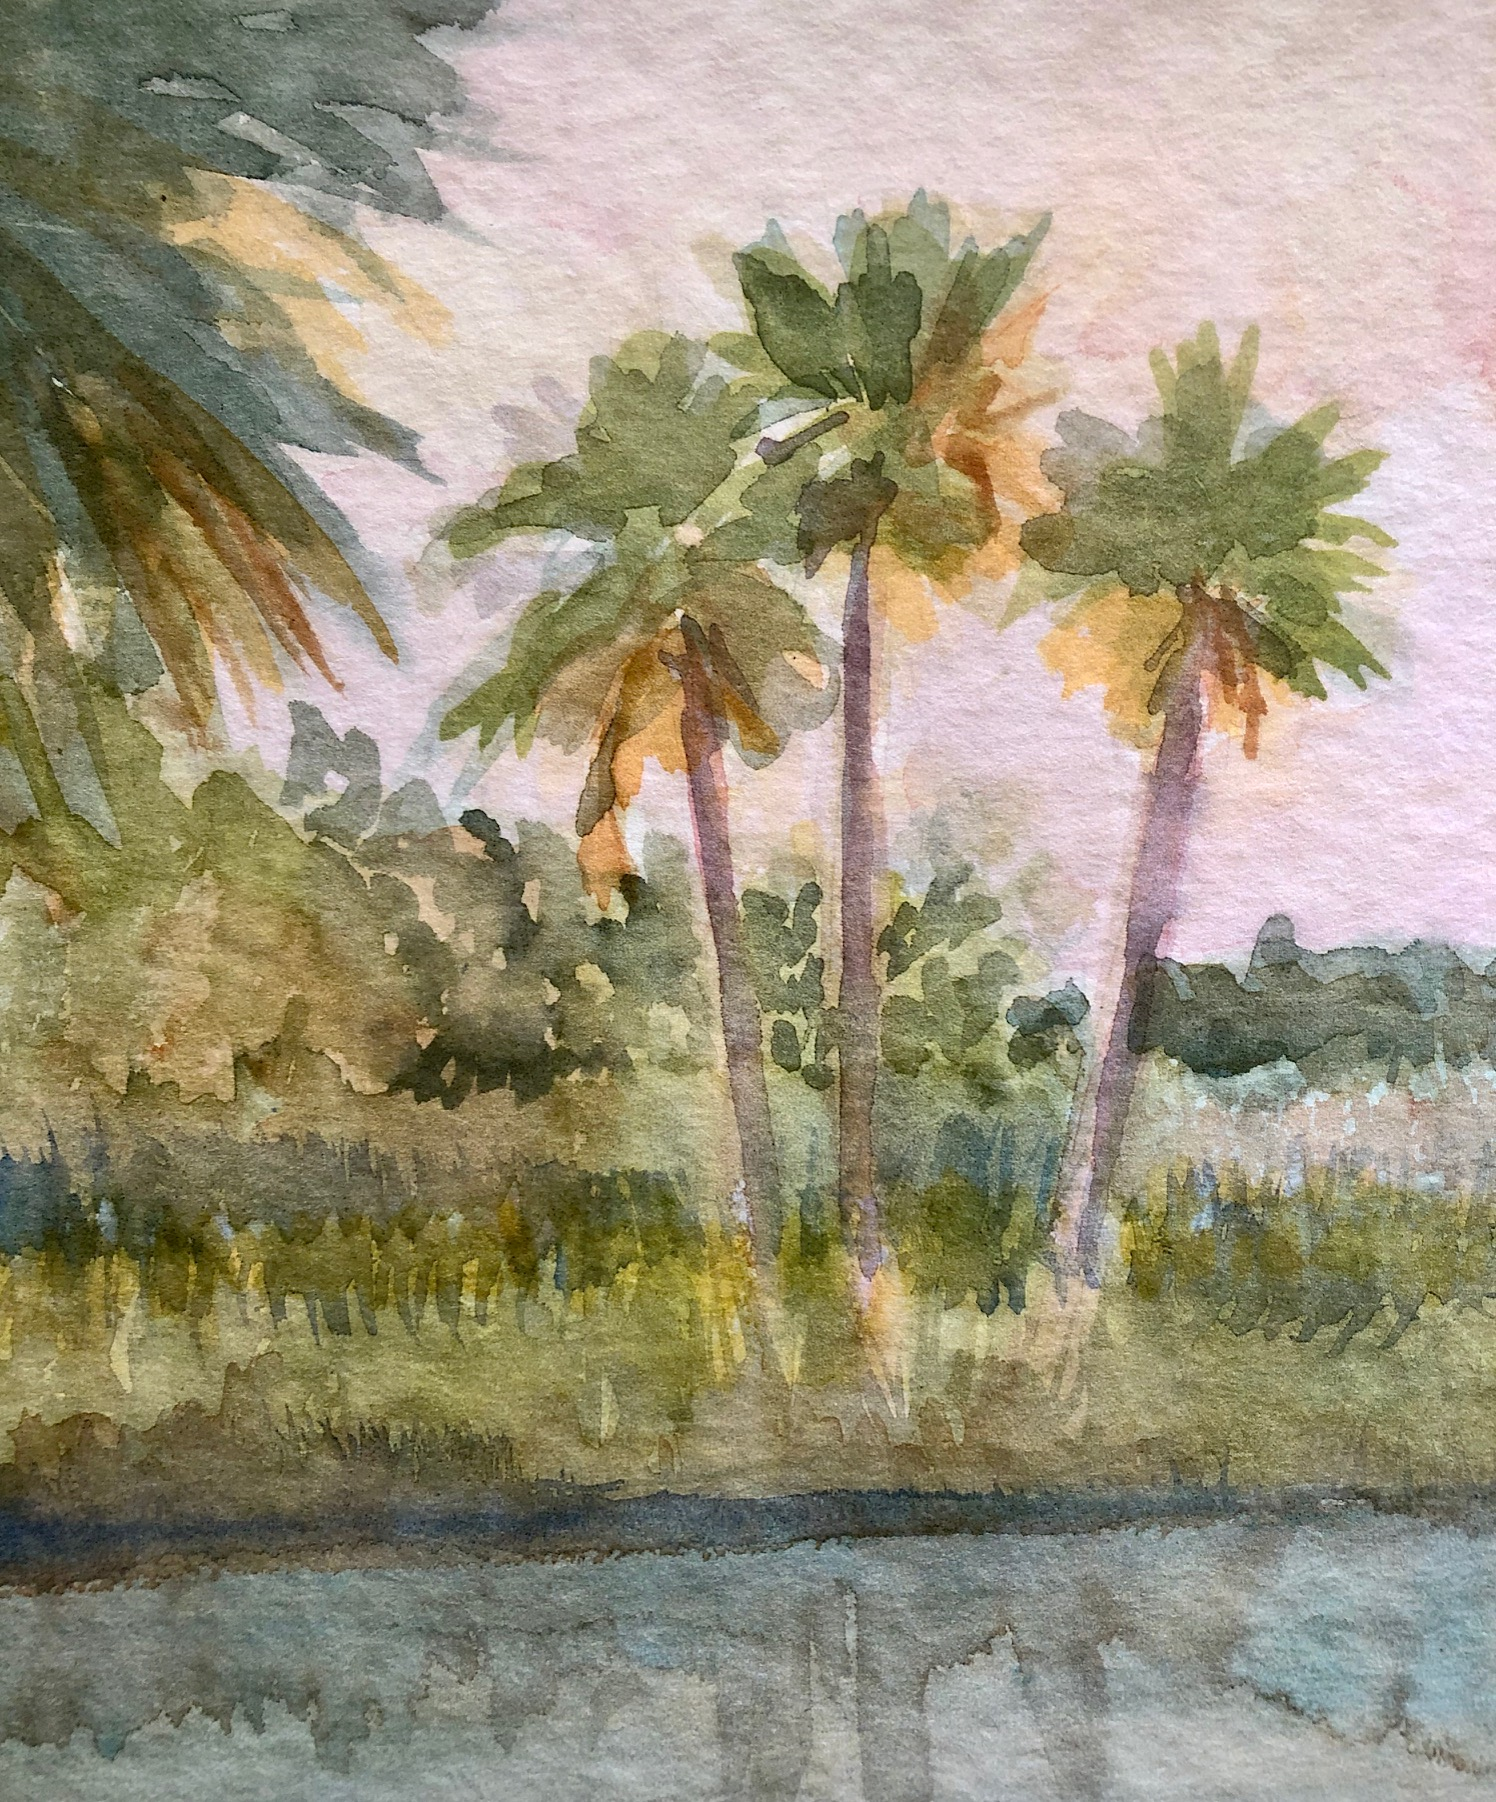 Watercolor Four Part Class Series - February 2020